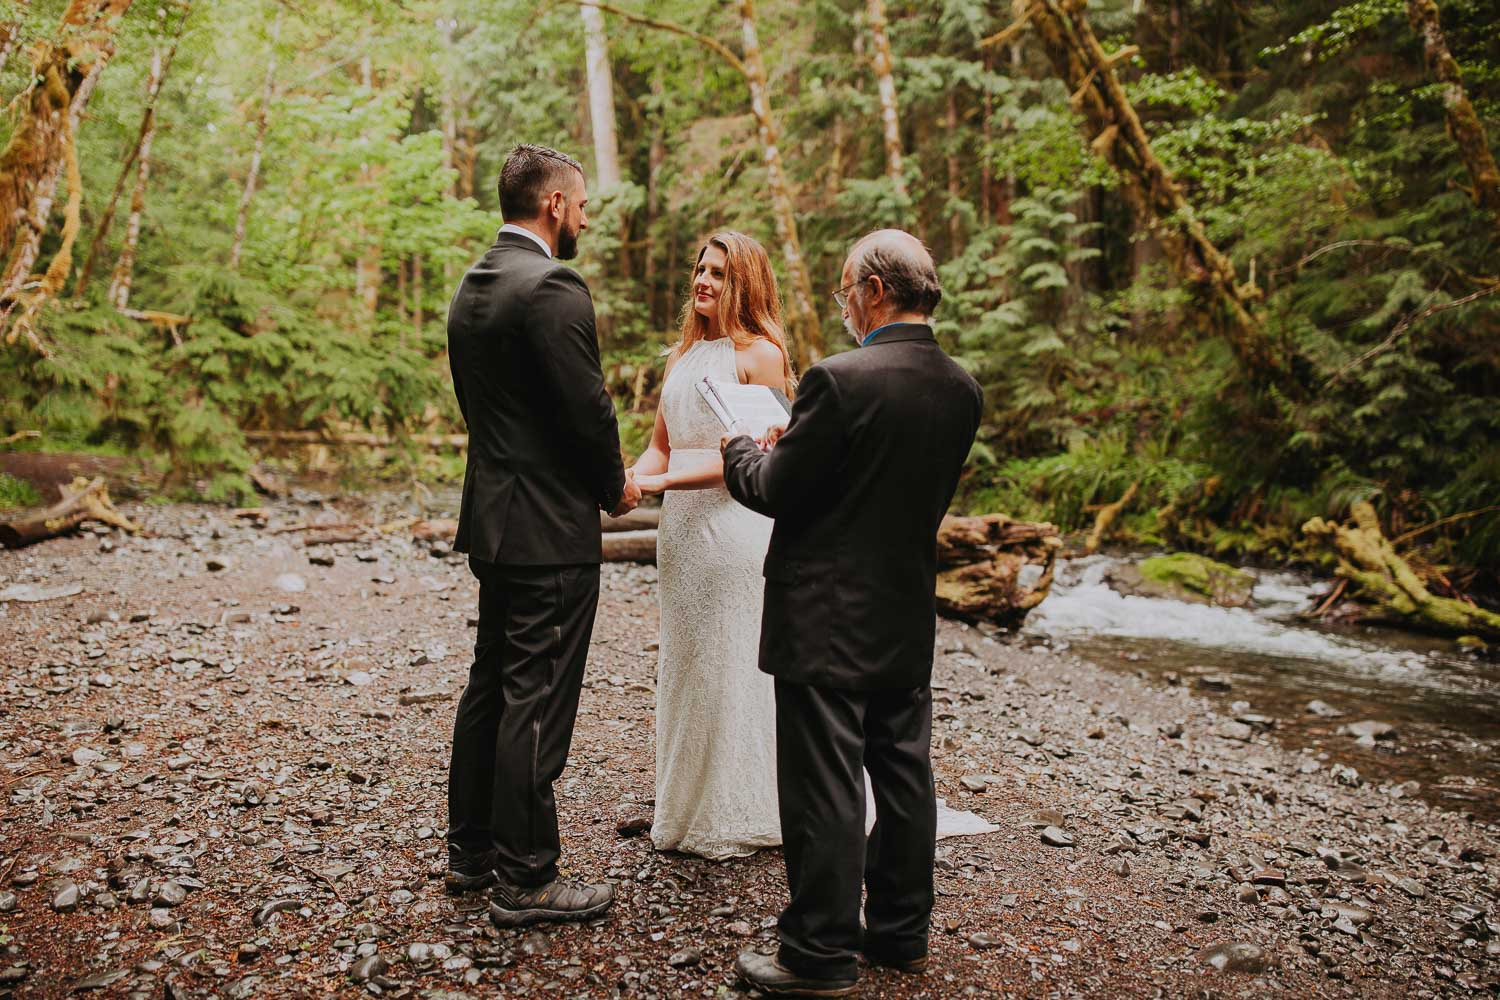 Lake Crescent rainy elopement at Olympic Peninsula. Rain forest intimate ceremony. Hiking to elope at Merymere Falls